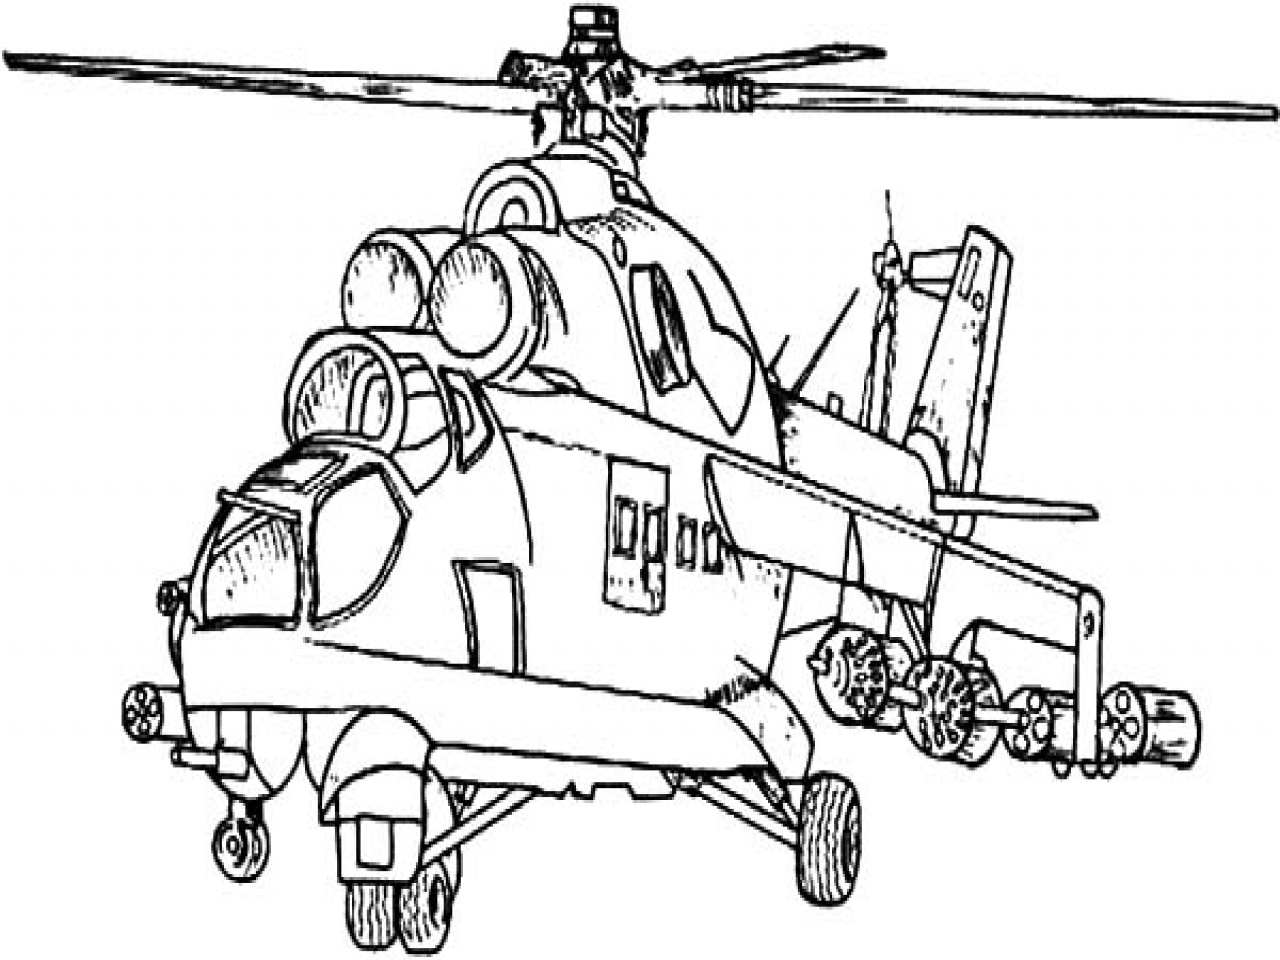 1280x960 Generous Helicopter Coloring Page Photos